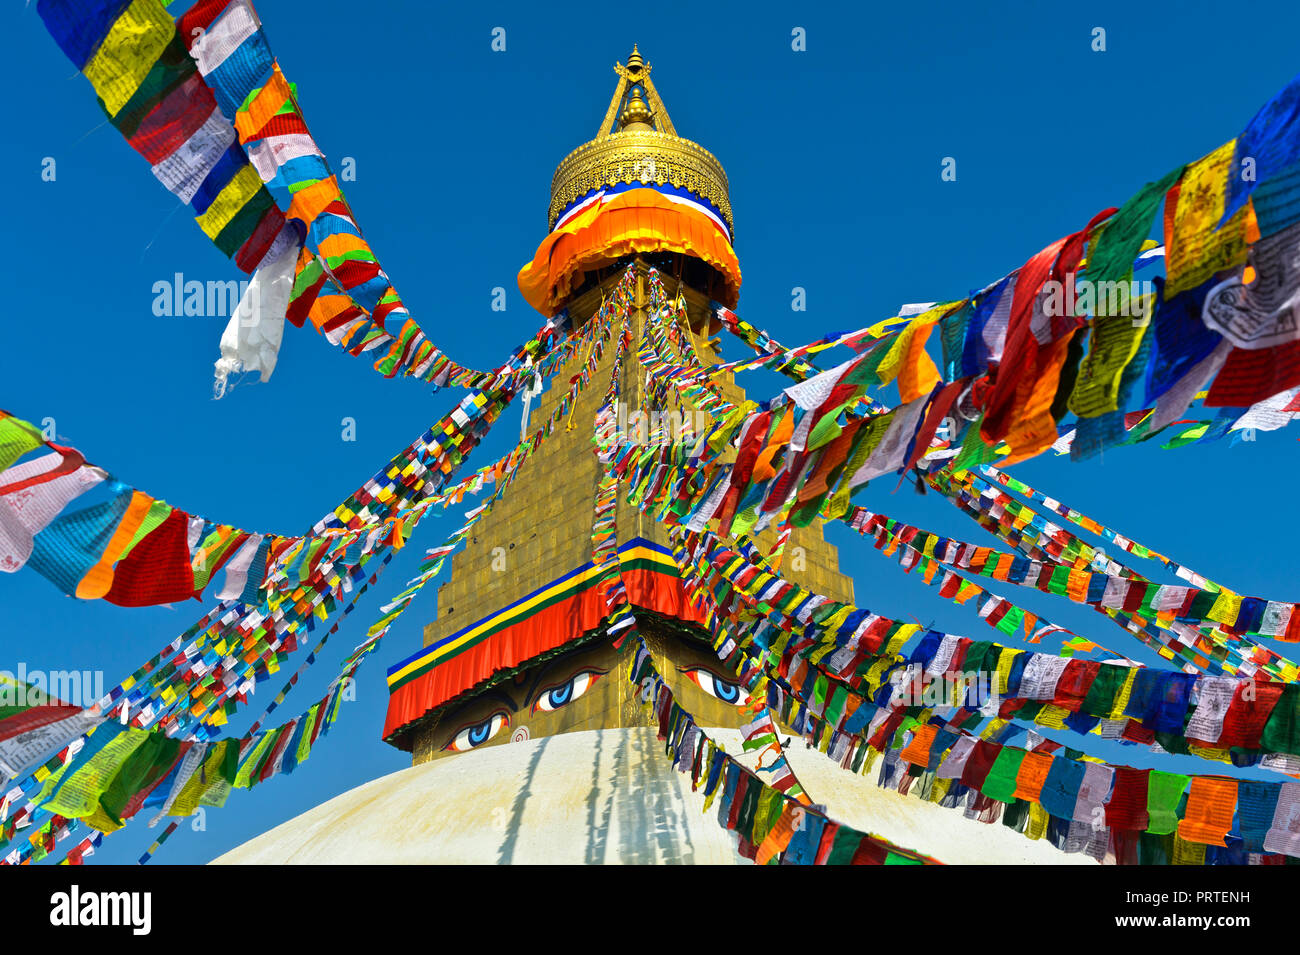 Prayer flags at the Boudhanath Stupa, Kathmandu, Nepal - Stock Image